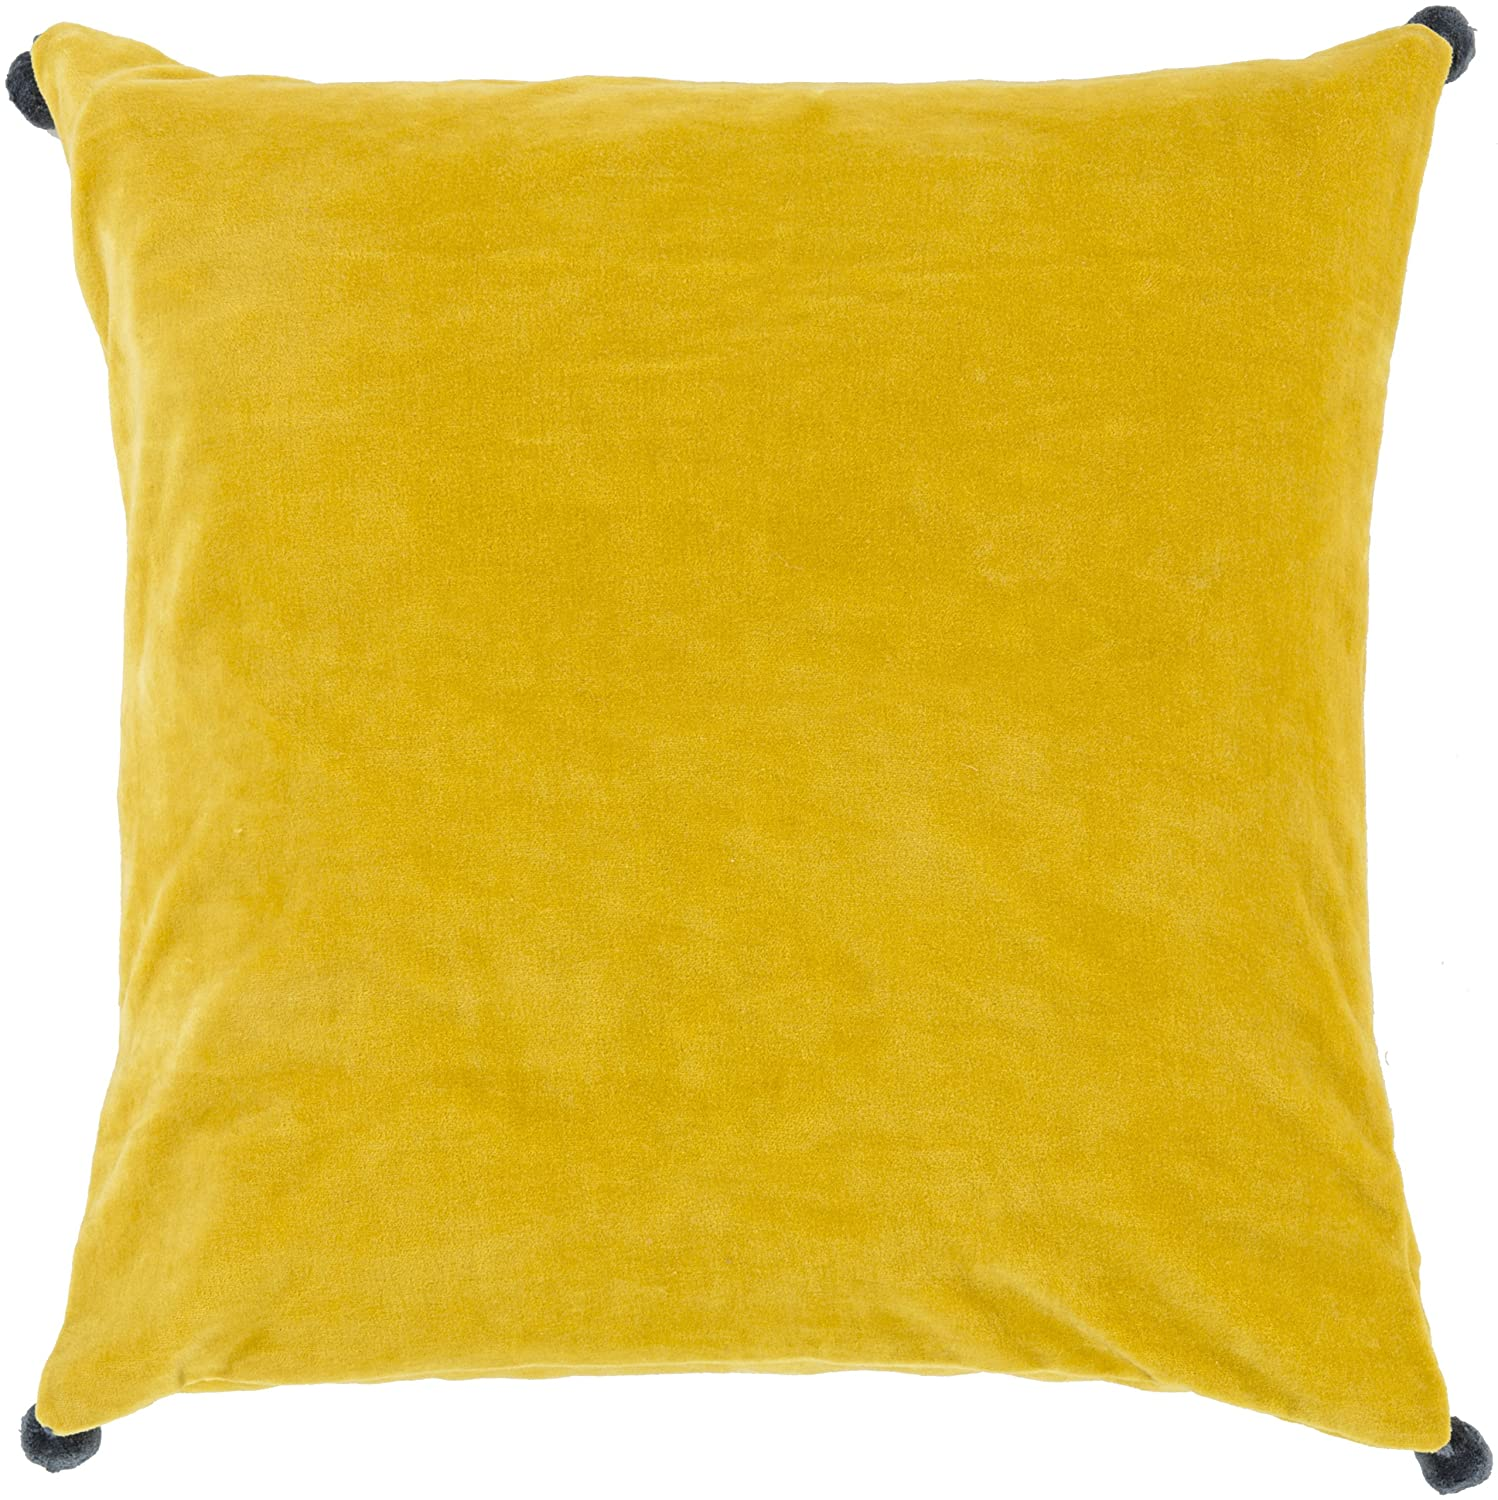 Surya VP007-1818P Synthetic Fill Pillow, 18-Inch by 18-Inch, Lemon/Navy